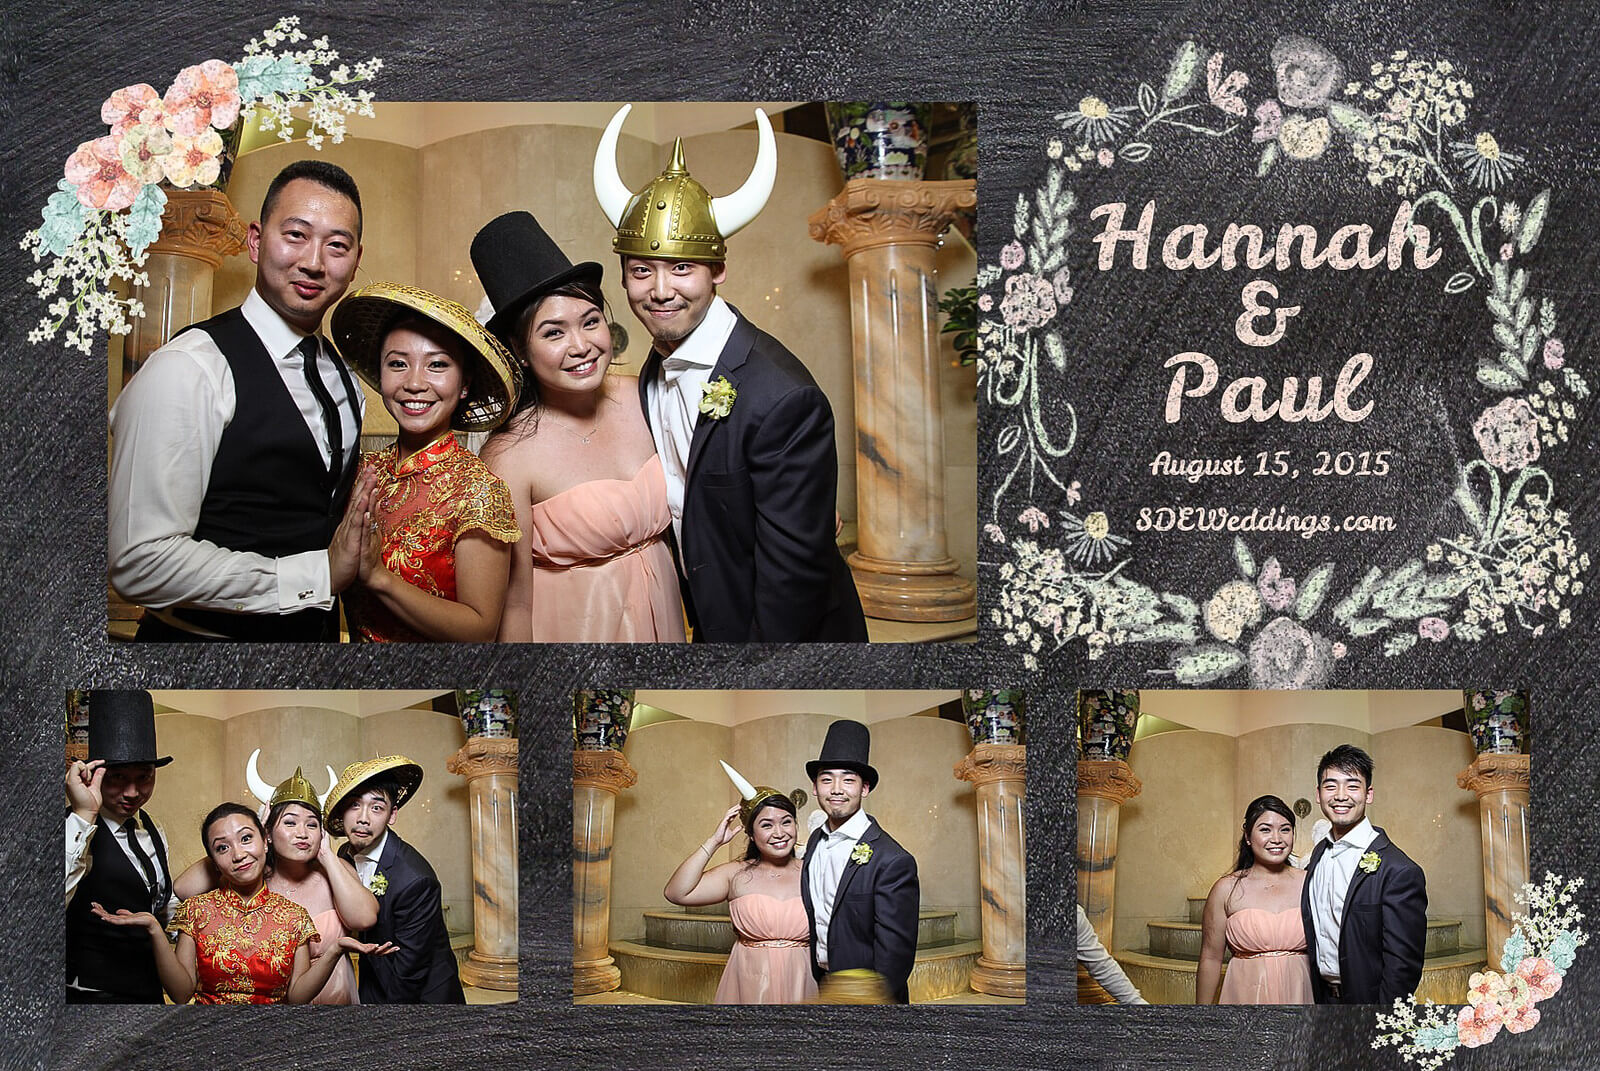 Markham Premiere Banquet Wedding Photobooth Rental 3